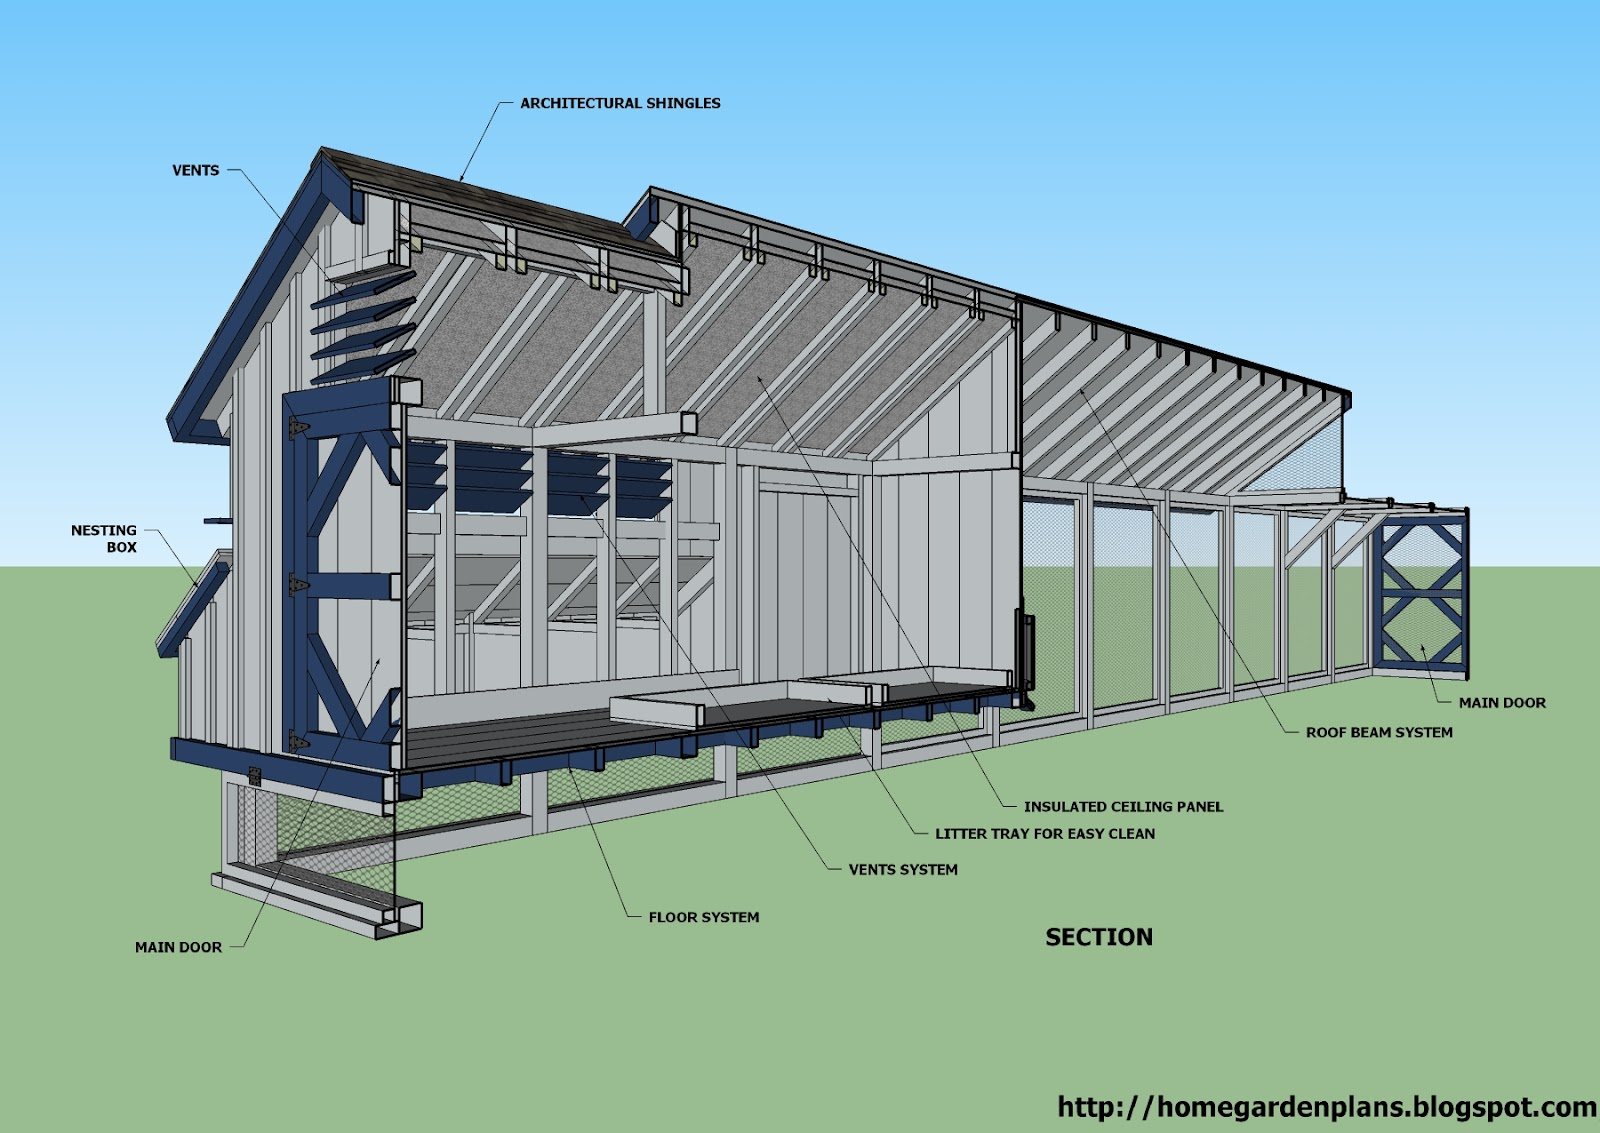 plans for a large chicken house - house plans